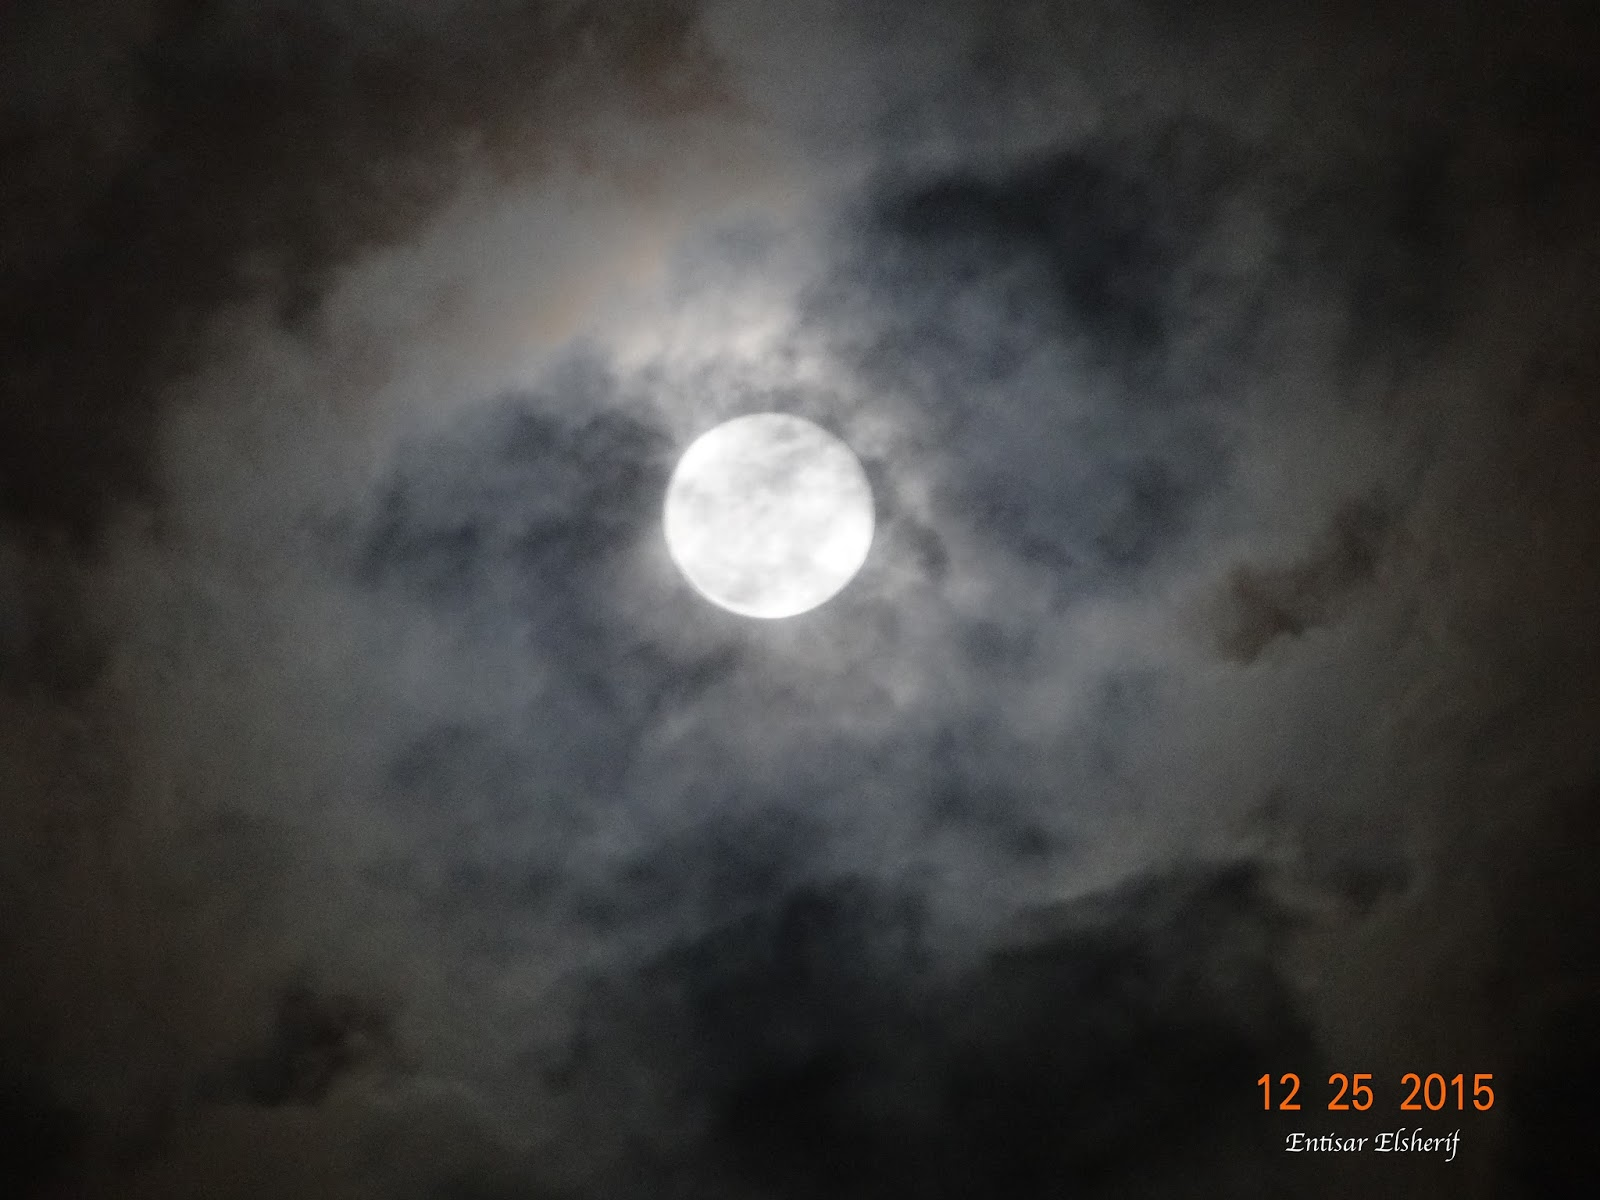 Moon Wasnt Even Full And It Wasnt >> Entisar Reflects Thoughts About Everything Rare Full Moon On